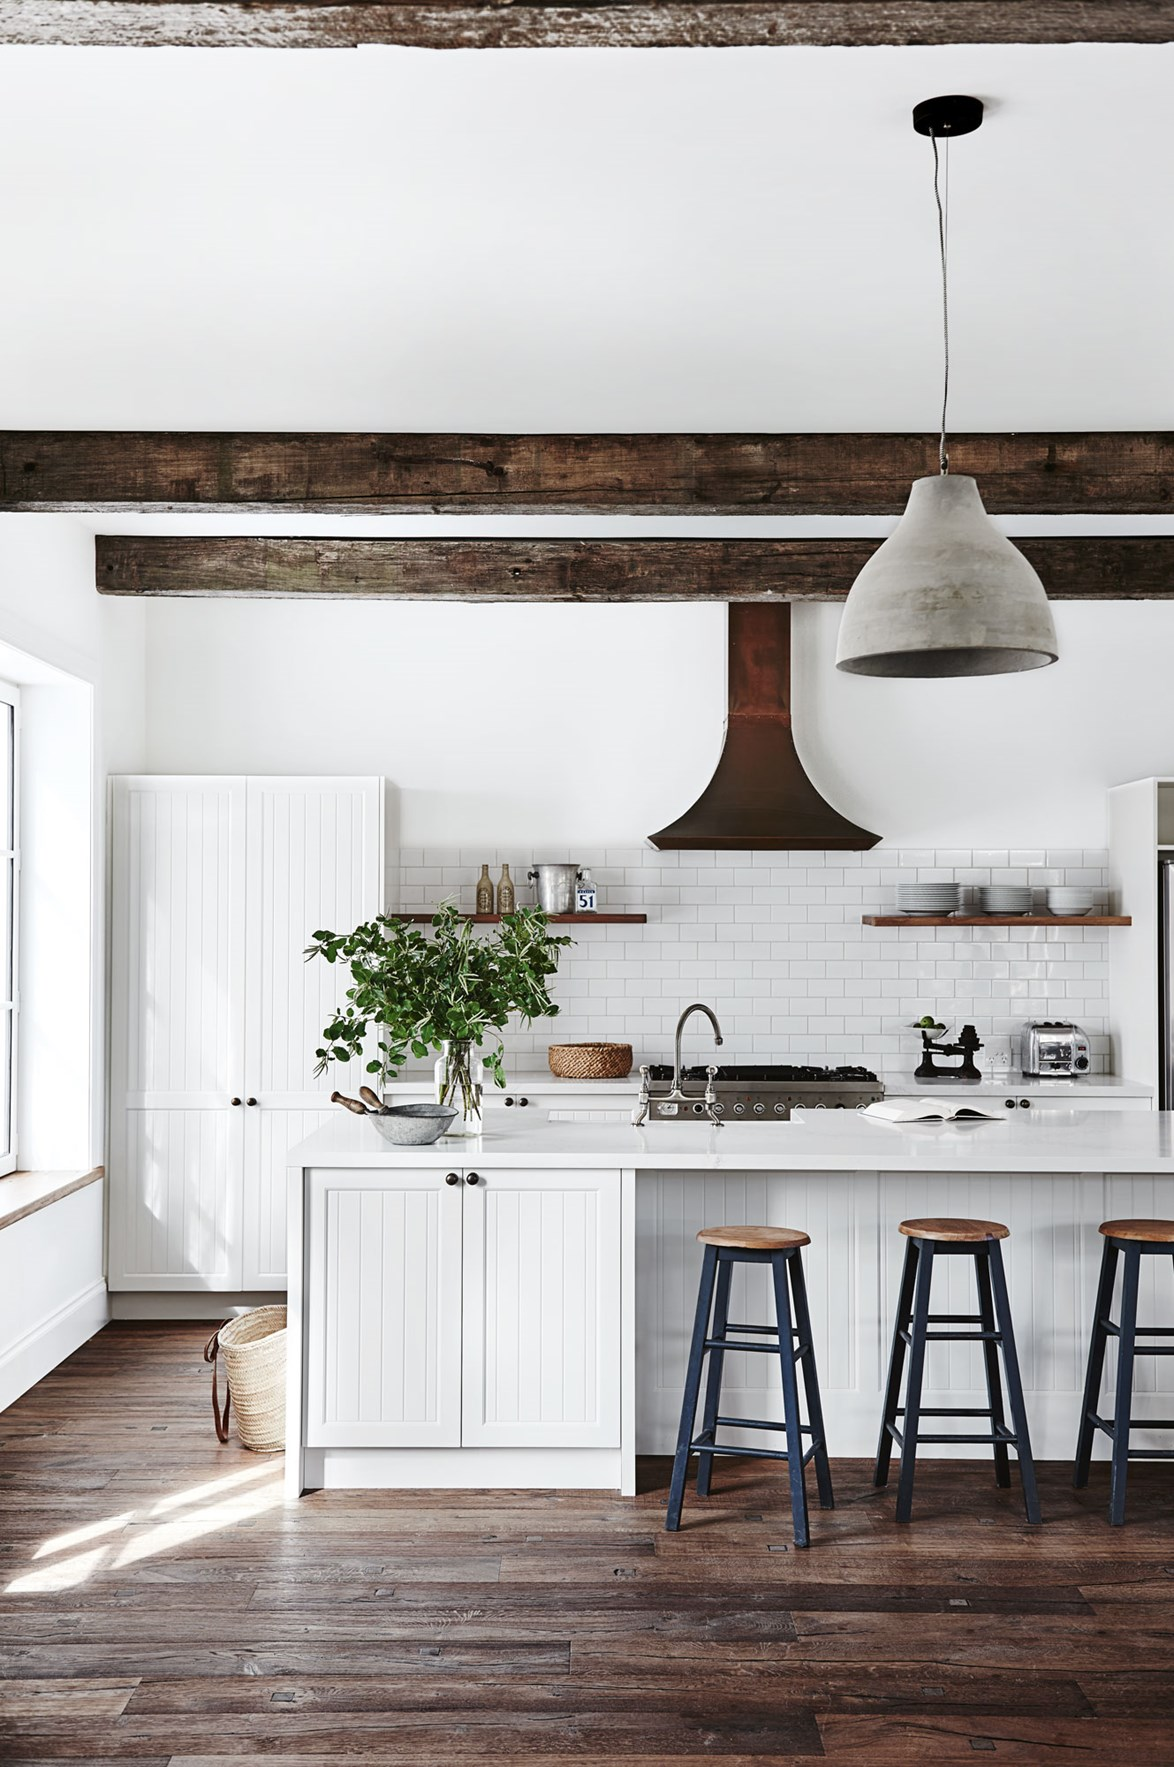 "If you like a clean, uncluttered aesthetic but still desire a kitchen with impact, channel the grandeur of French provincial style with your accessories. At [The French House in Trentham](https://www.homestolove.com.au/french-provincial-farmhouse-trentham-12156 |target=""_blank"") a shaker-style base has been layered with quality fixtures and finishes that really make a statement. See the shiny gooseneck tap, showstopping brass rangehood and, of course, the rustic ceiling beams. *Photo: Jessie Prince / Story: Country Style*"